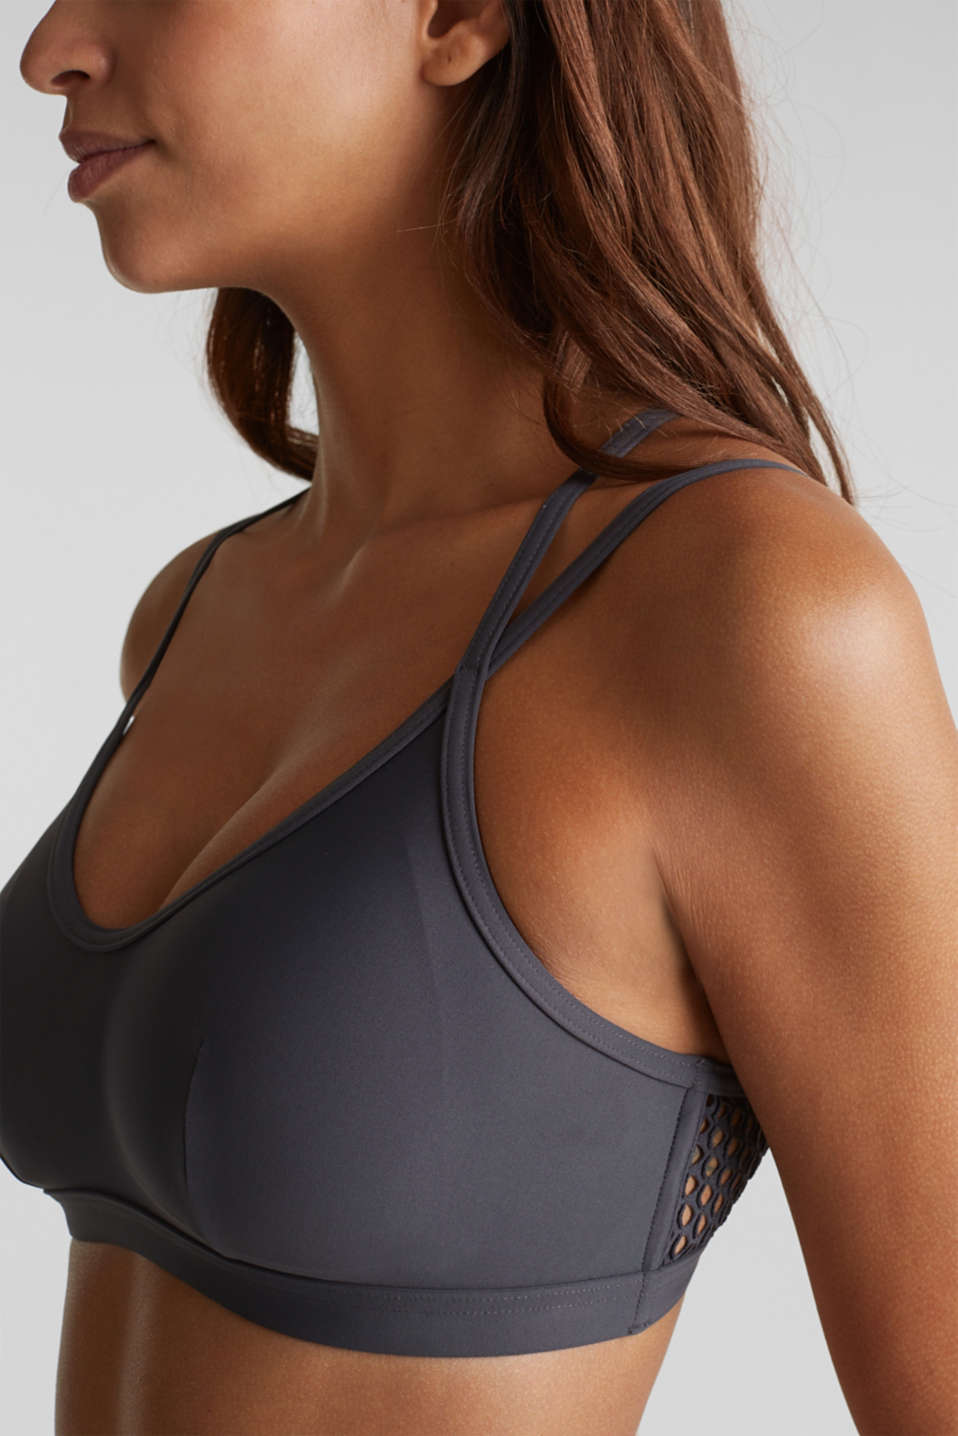 Padded non-wired bikini top with mesh details, ANTHRACITE, detail image number 3